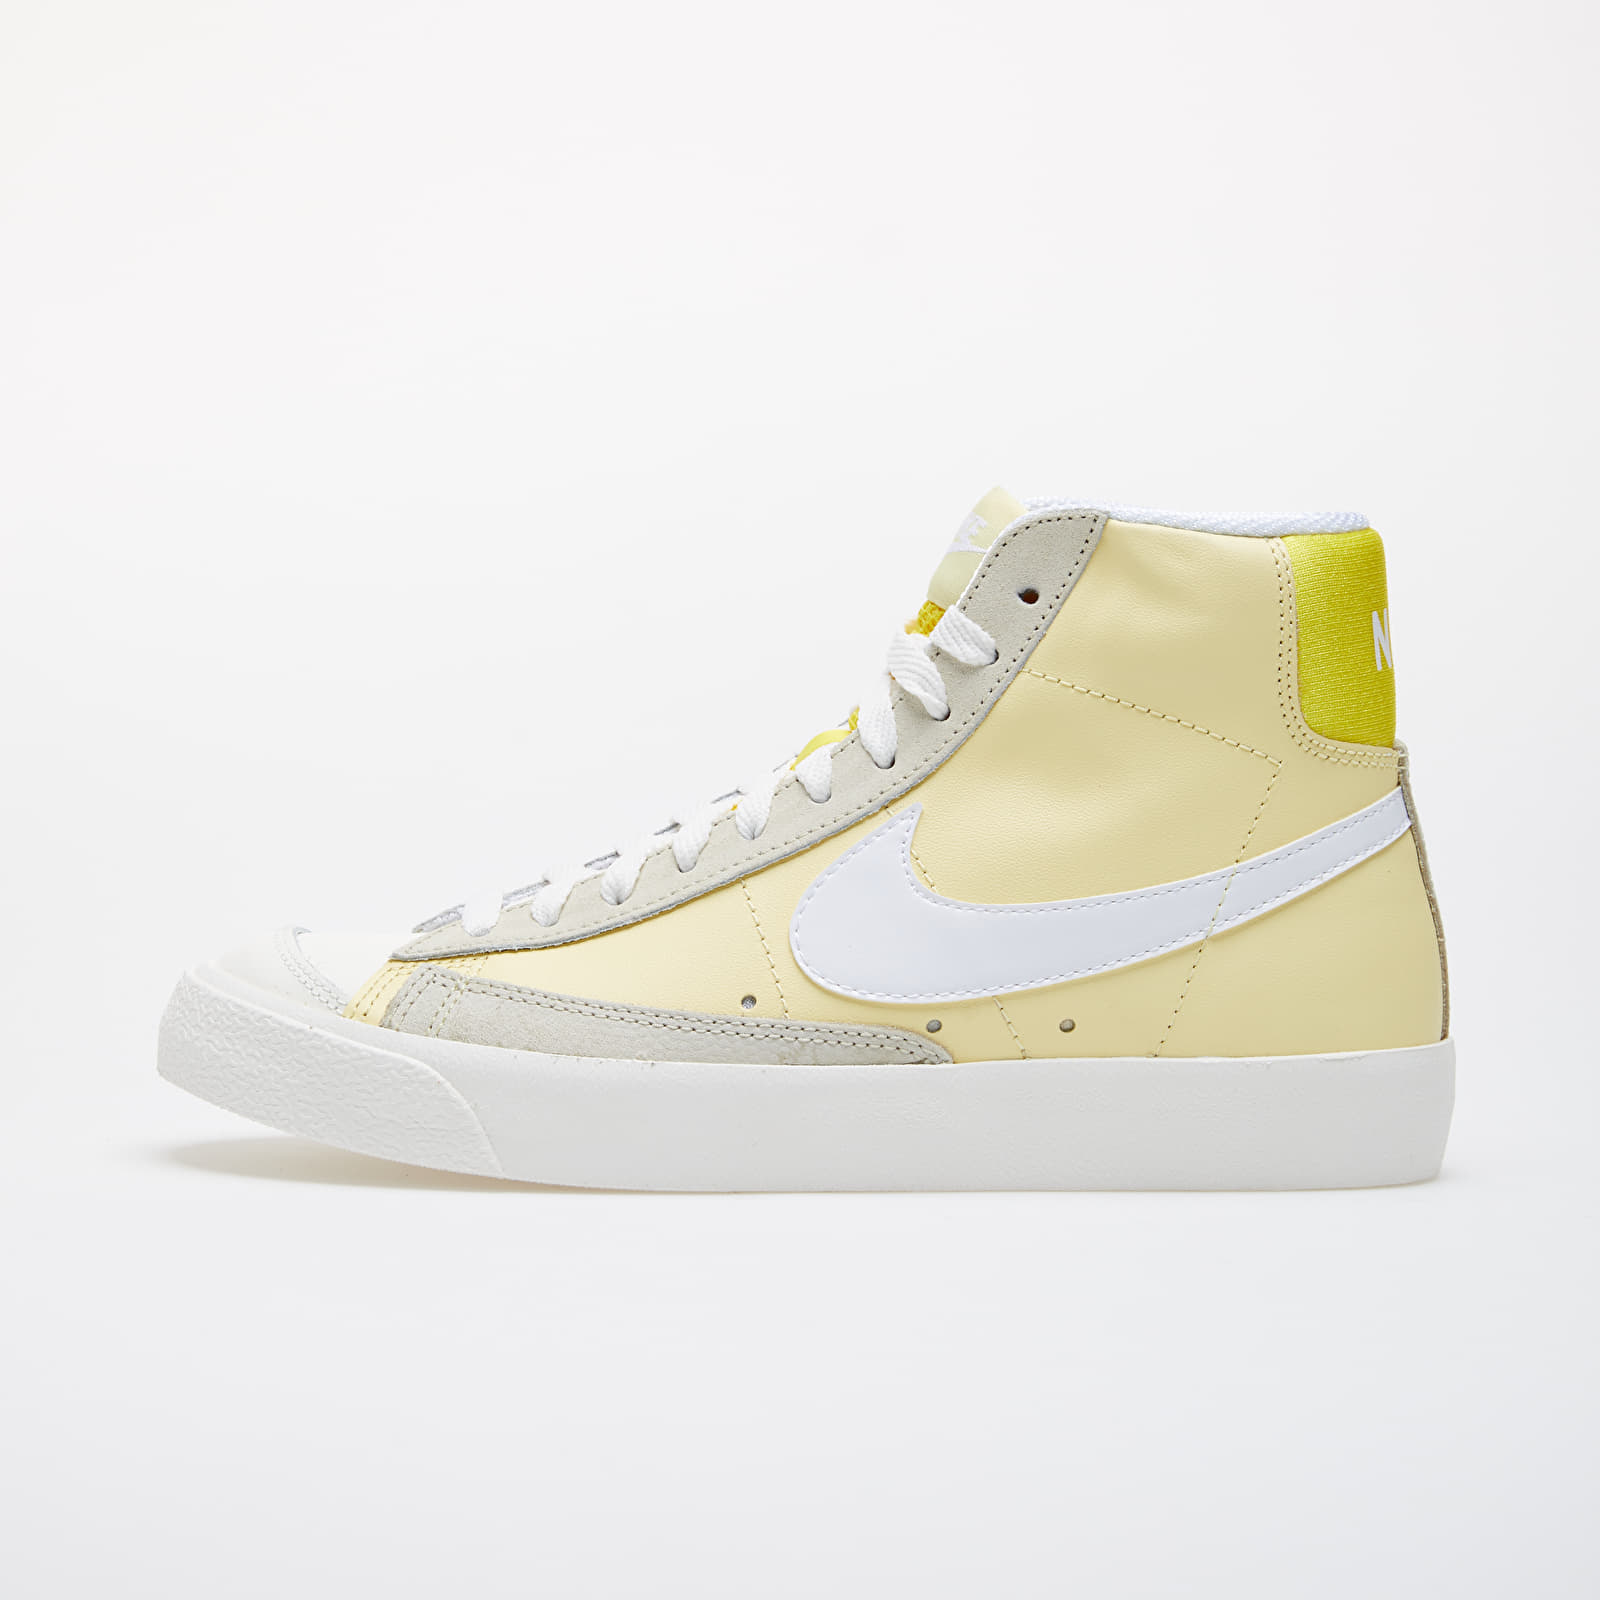 Women's shoes Nike Wmns Blazer Mid '77 Bicycle Yellow/ White-Opti Yellow-Fossil